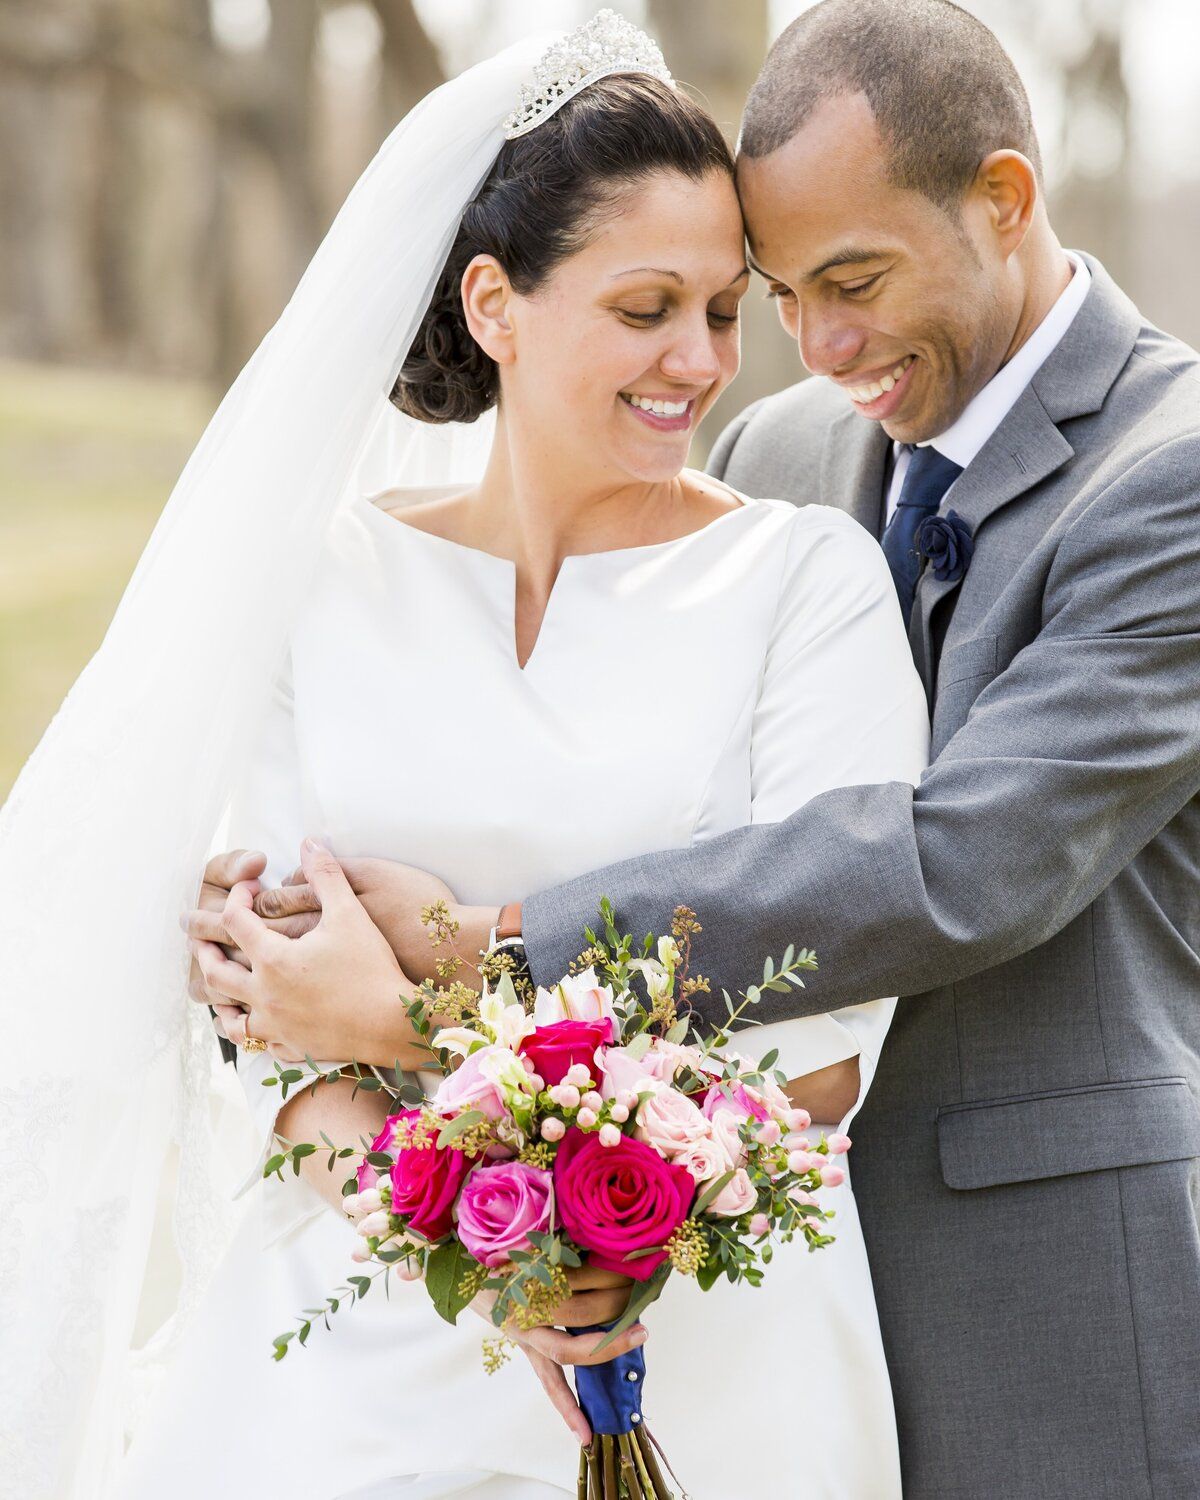 Multicultural weddings services in Washington D.C & Virgina